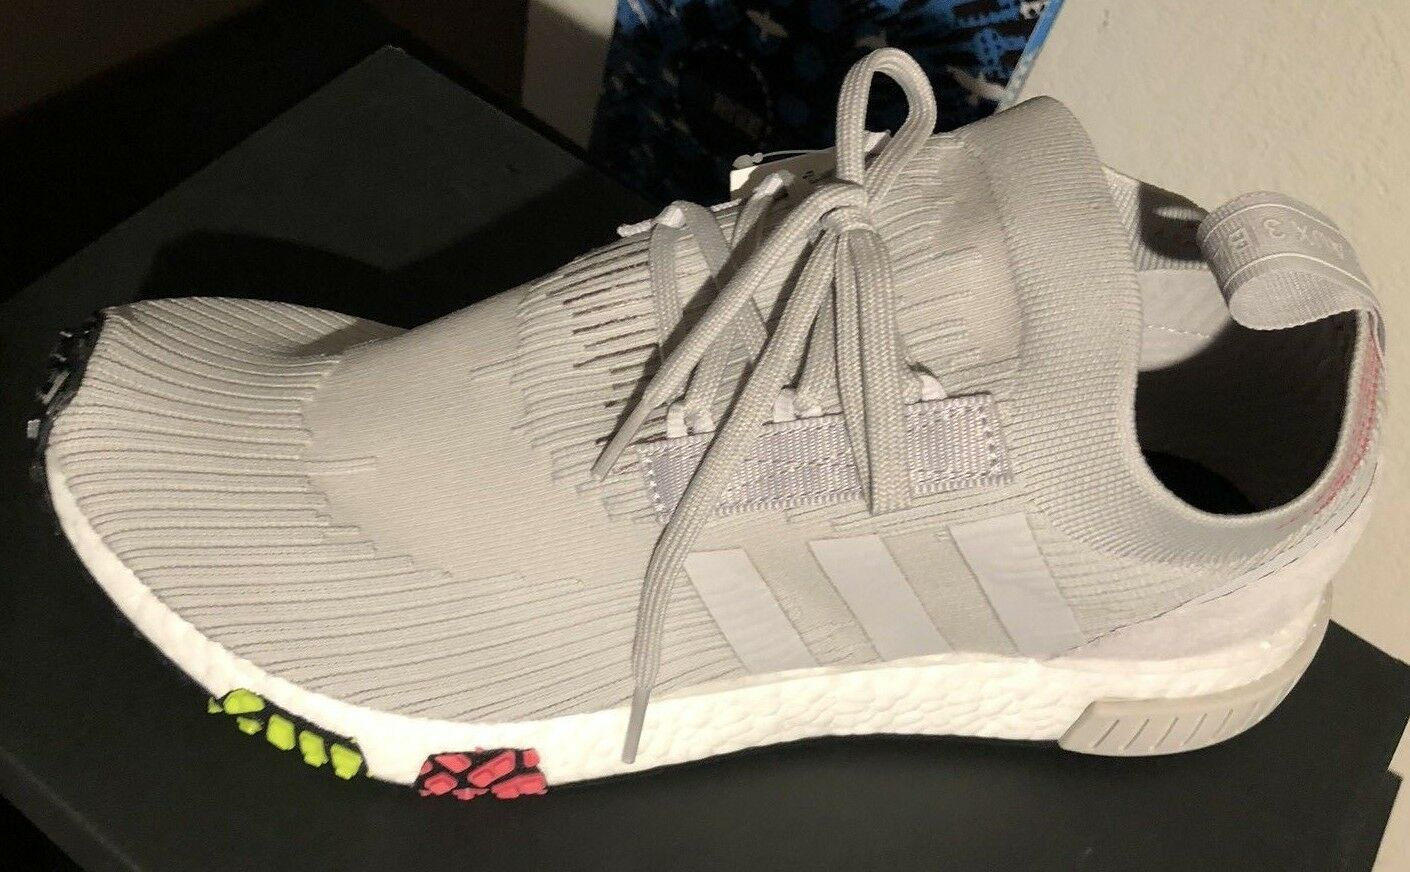 Adidas NMD Racer PK Primeknit Off White Boost Size 9.5  180